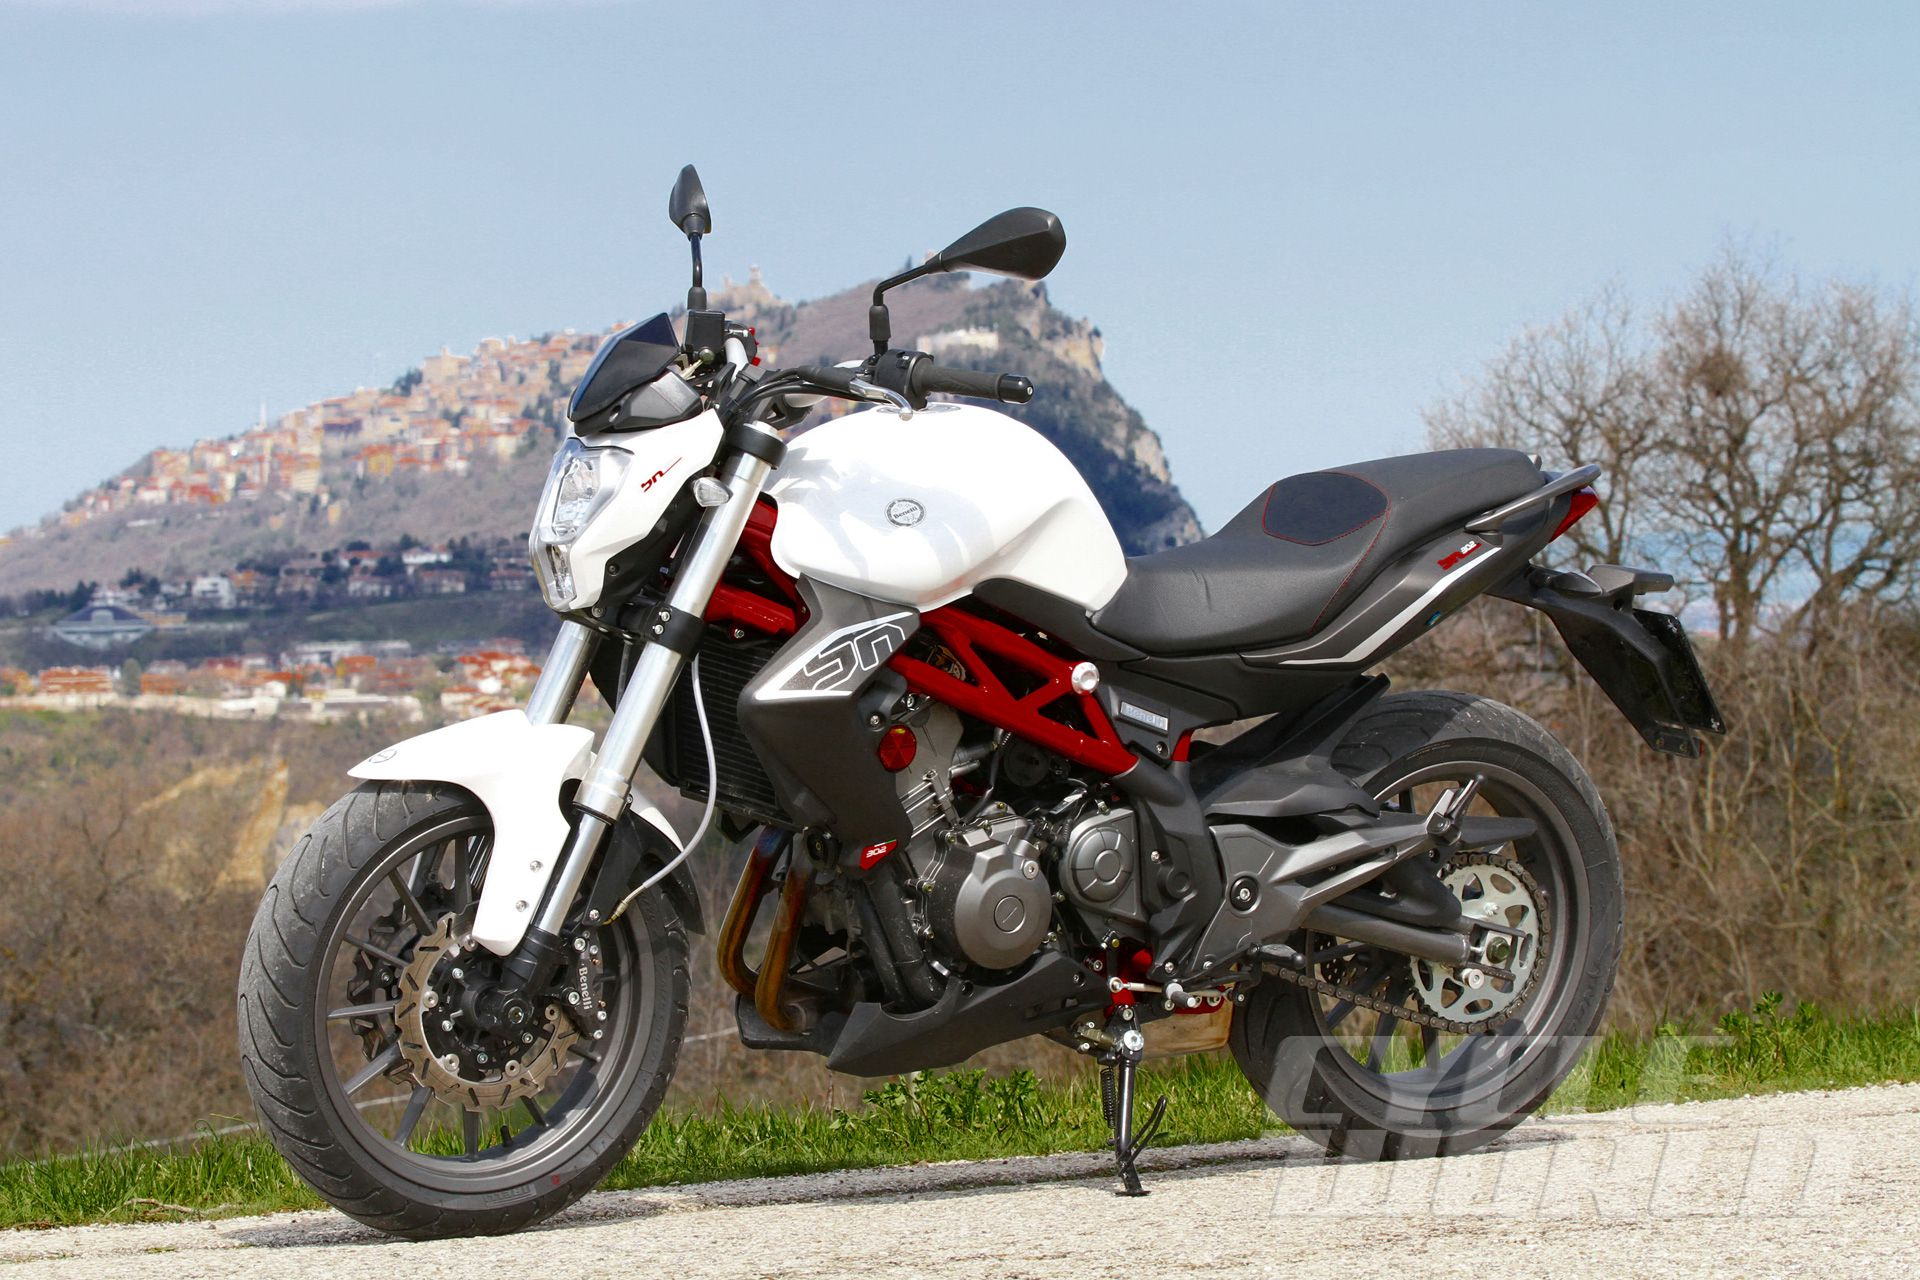 2015 Benelli Bn 302 First Ride Motorcycle Review Photos Specifications Cycle World